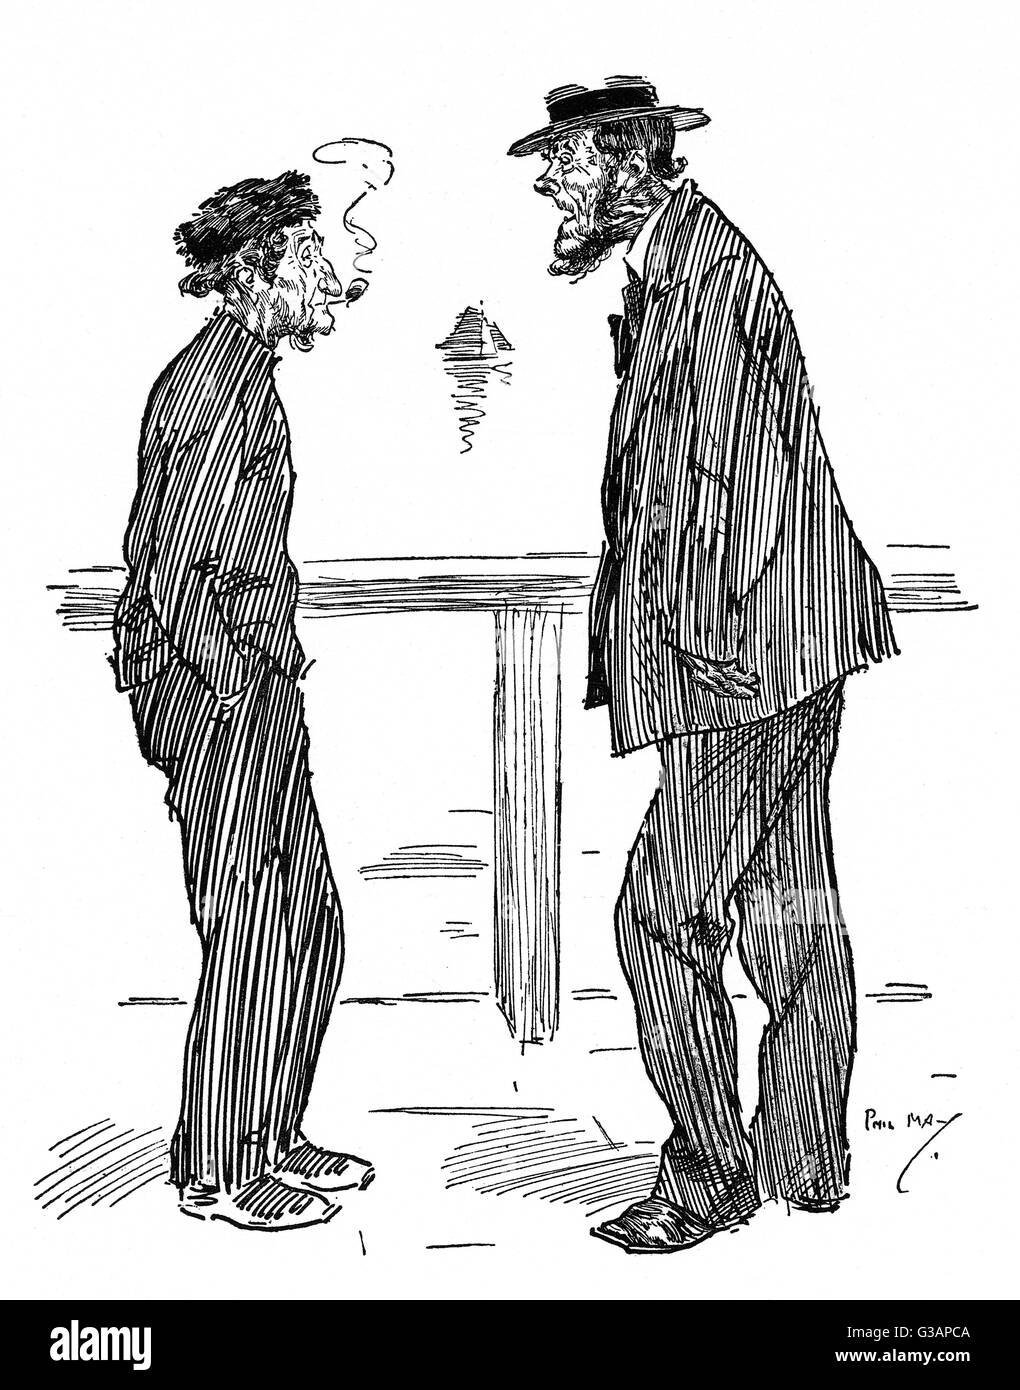 """""""Tain't so long ago, Willium, since you an' me was the Dandies of Deal!""""     Date: circa - Stock Image"""